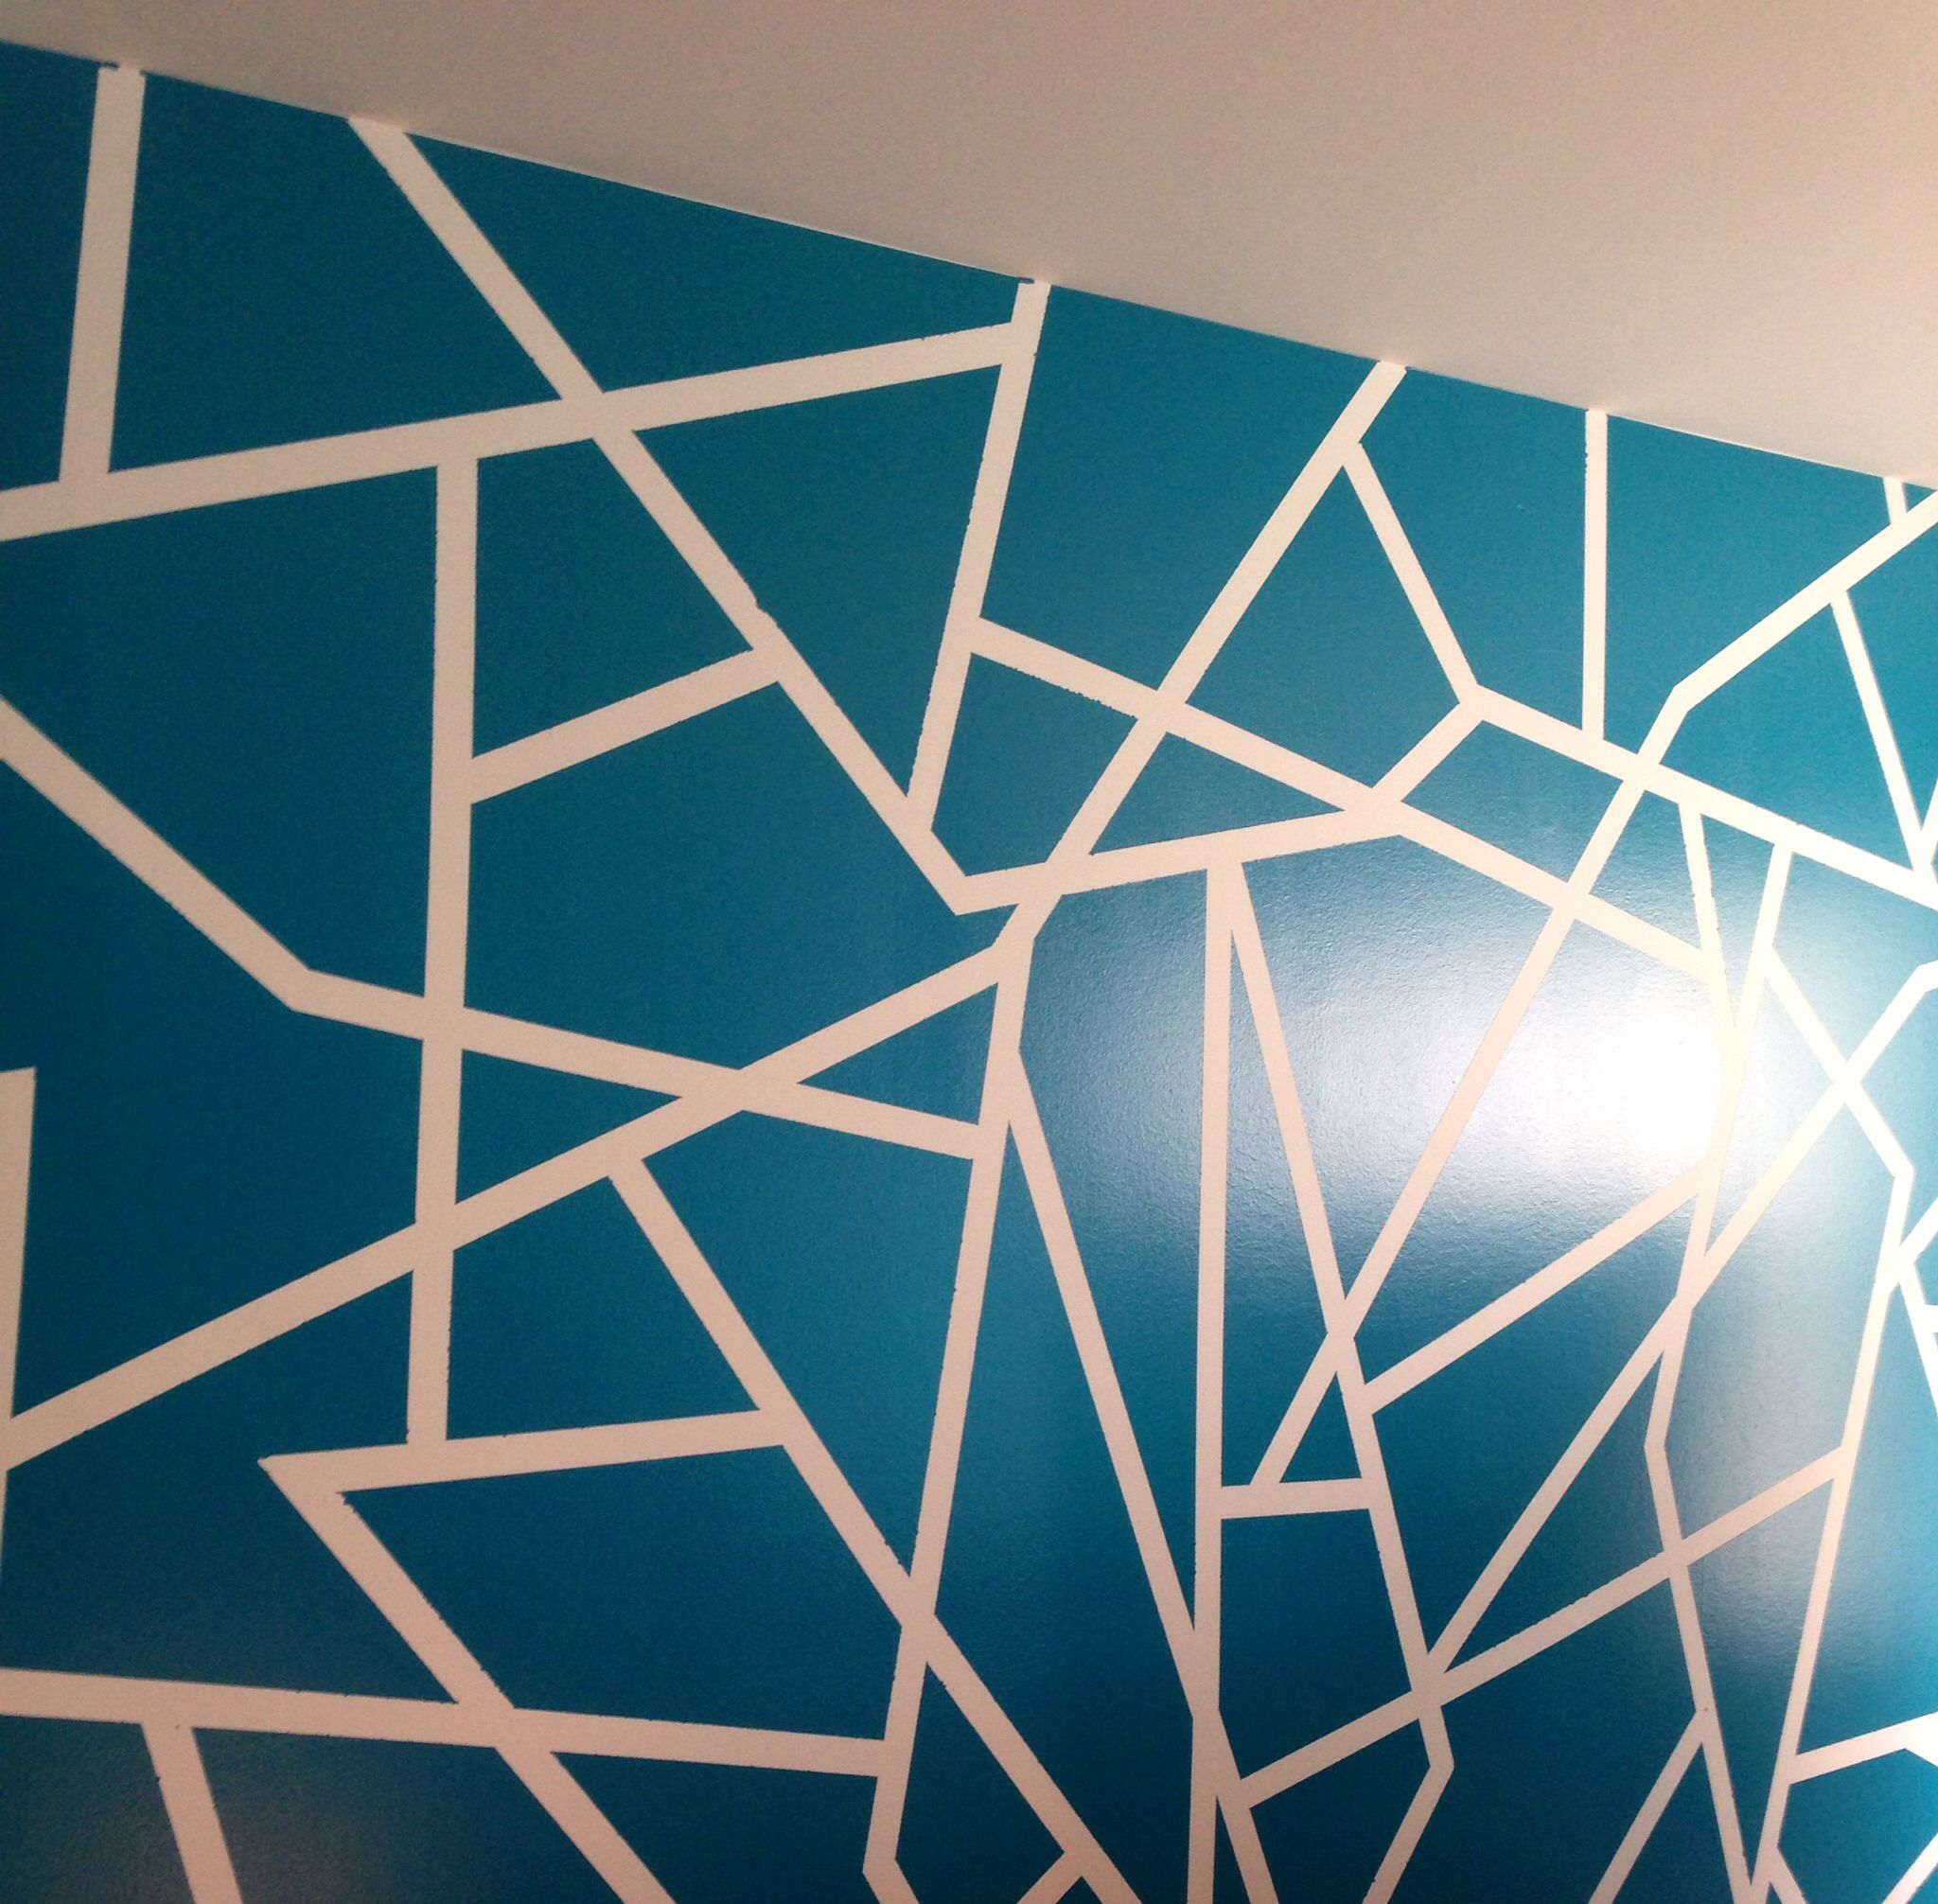 Wall Designs To Paint : Geometric wall paint design color glidden ocean